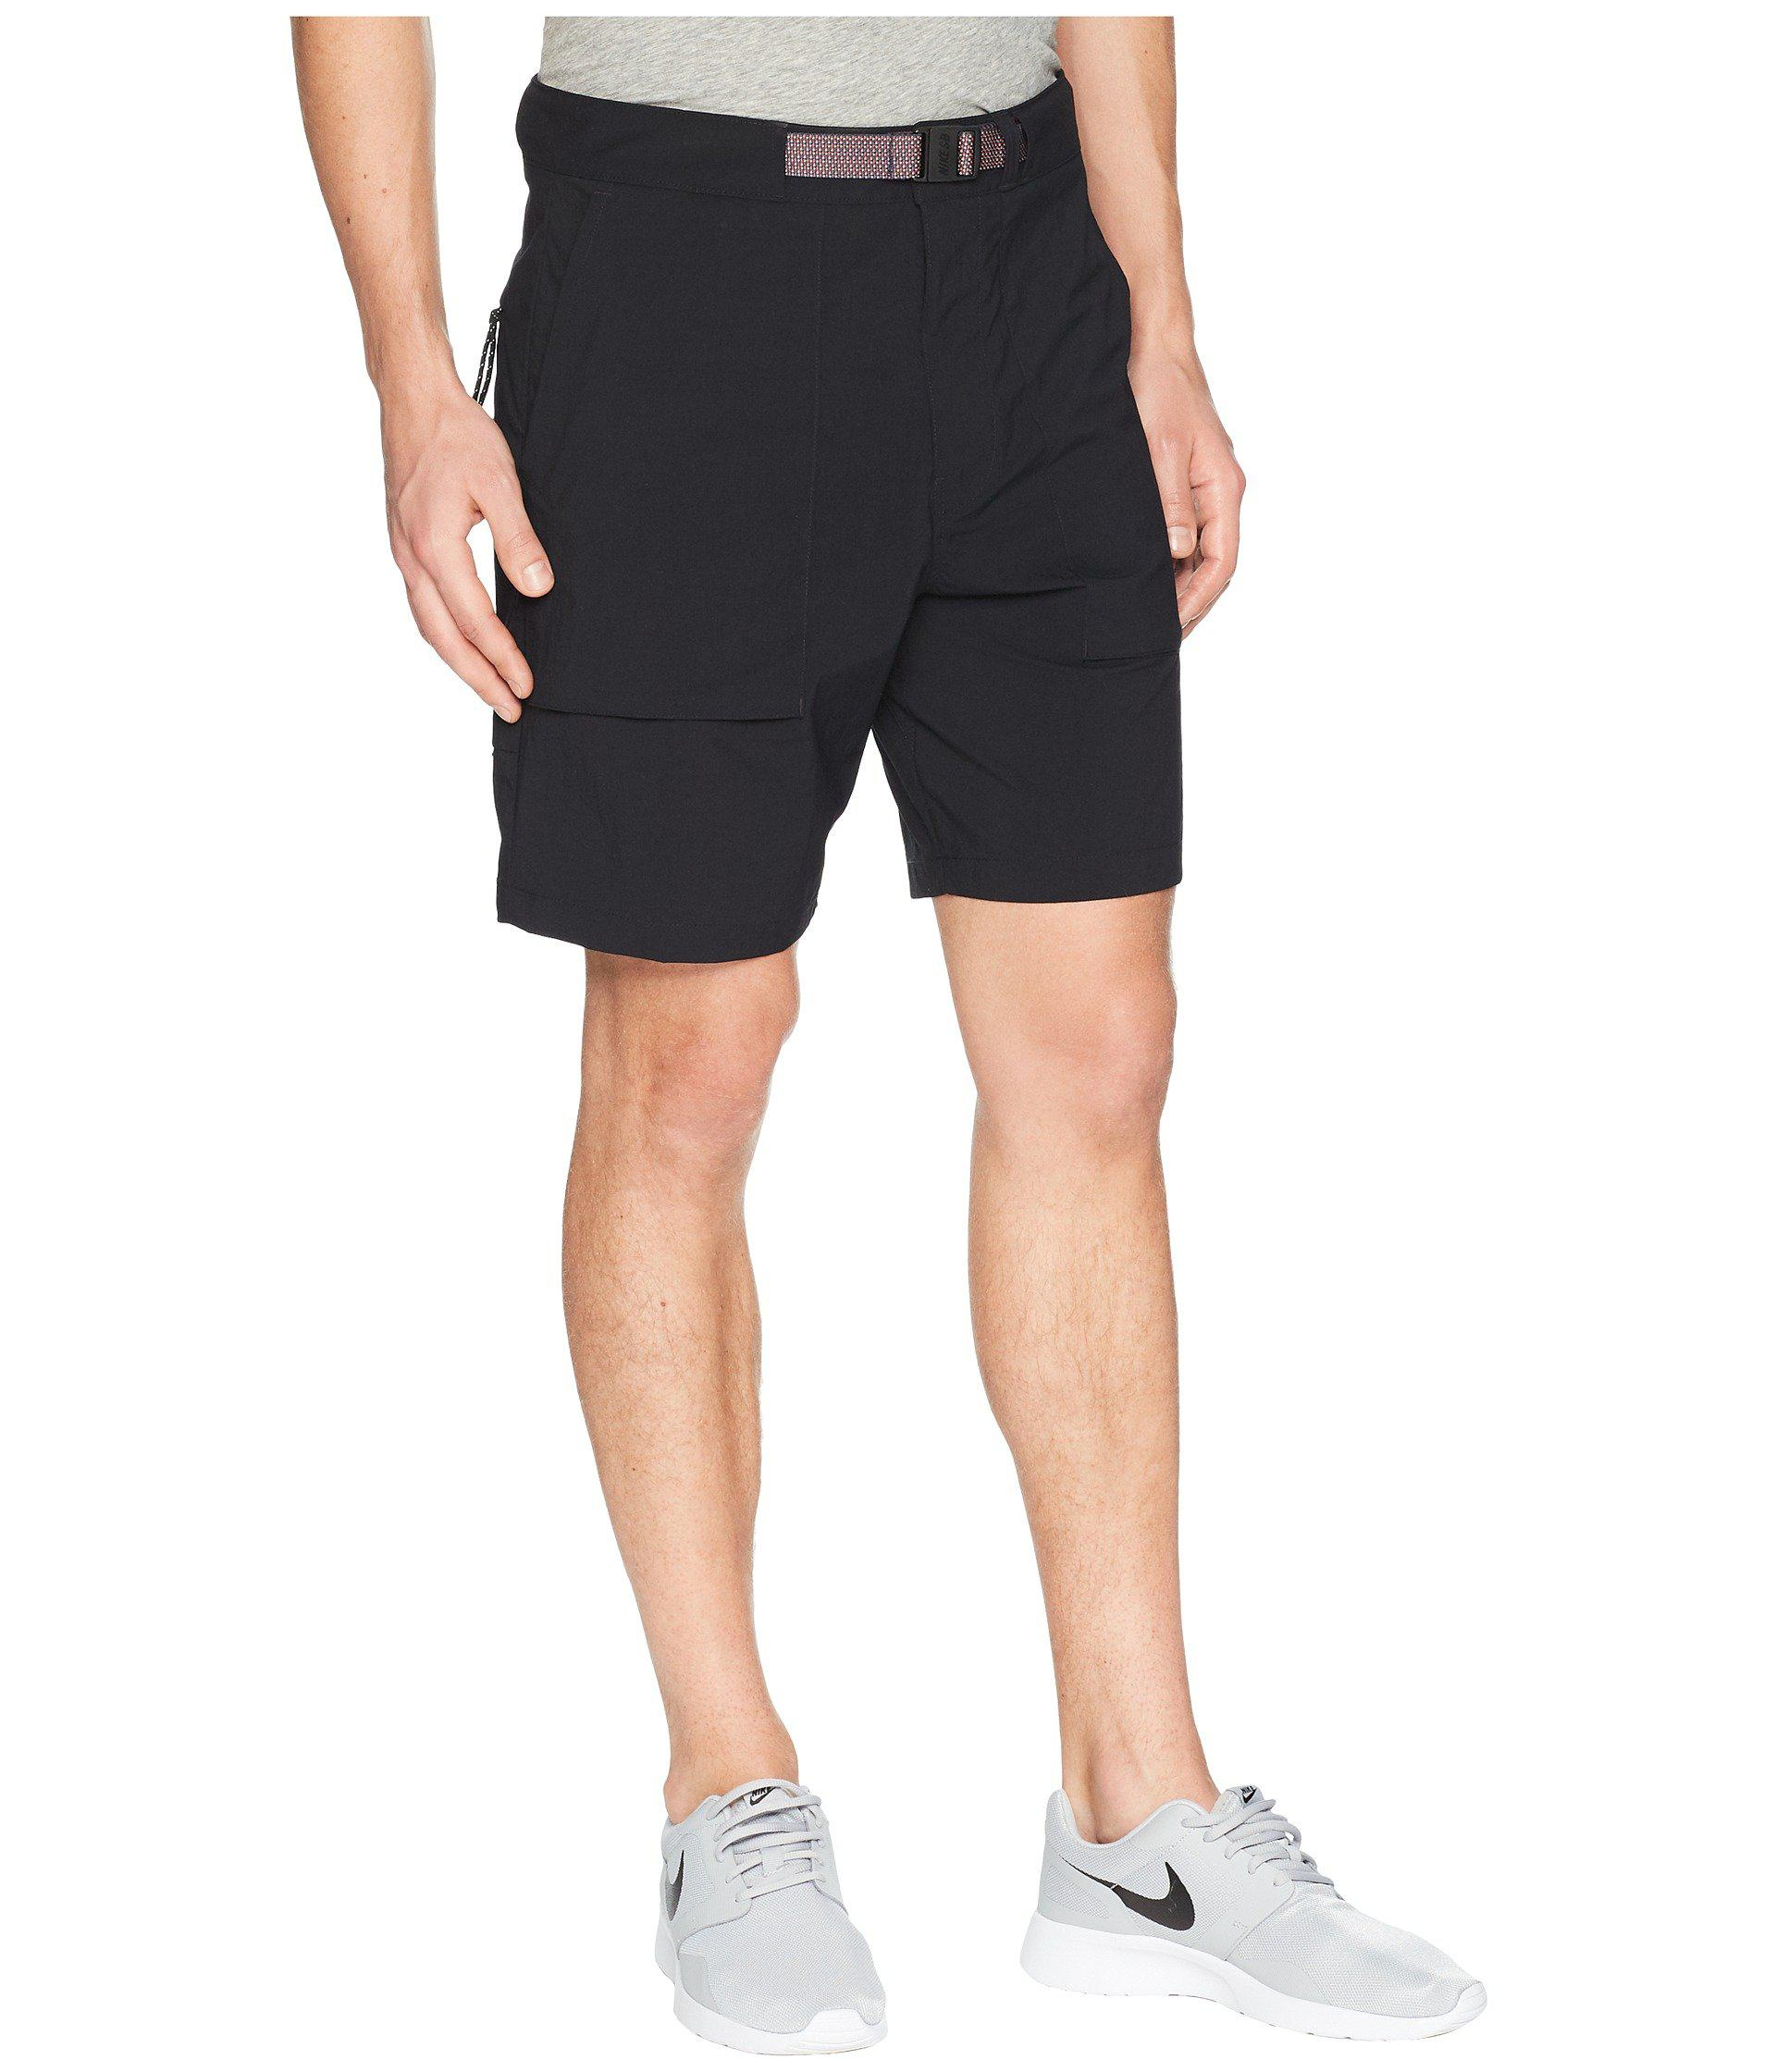 8b74ca6dac61 Lyst - Nike Sb Flex Everett Shorts in Black for Men - Save 34%